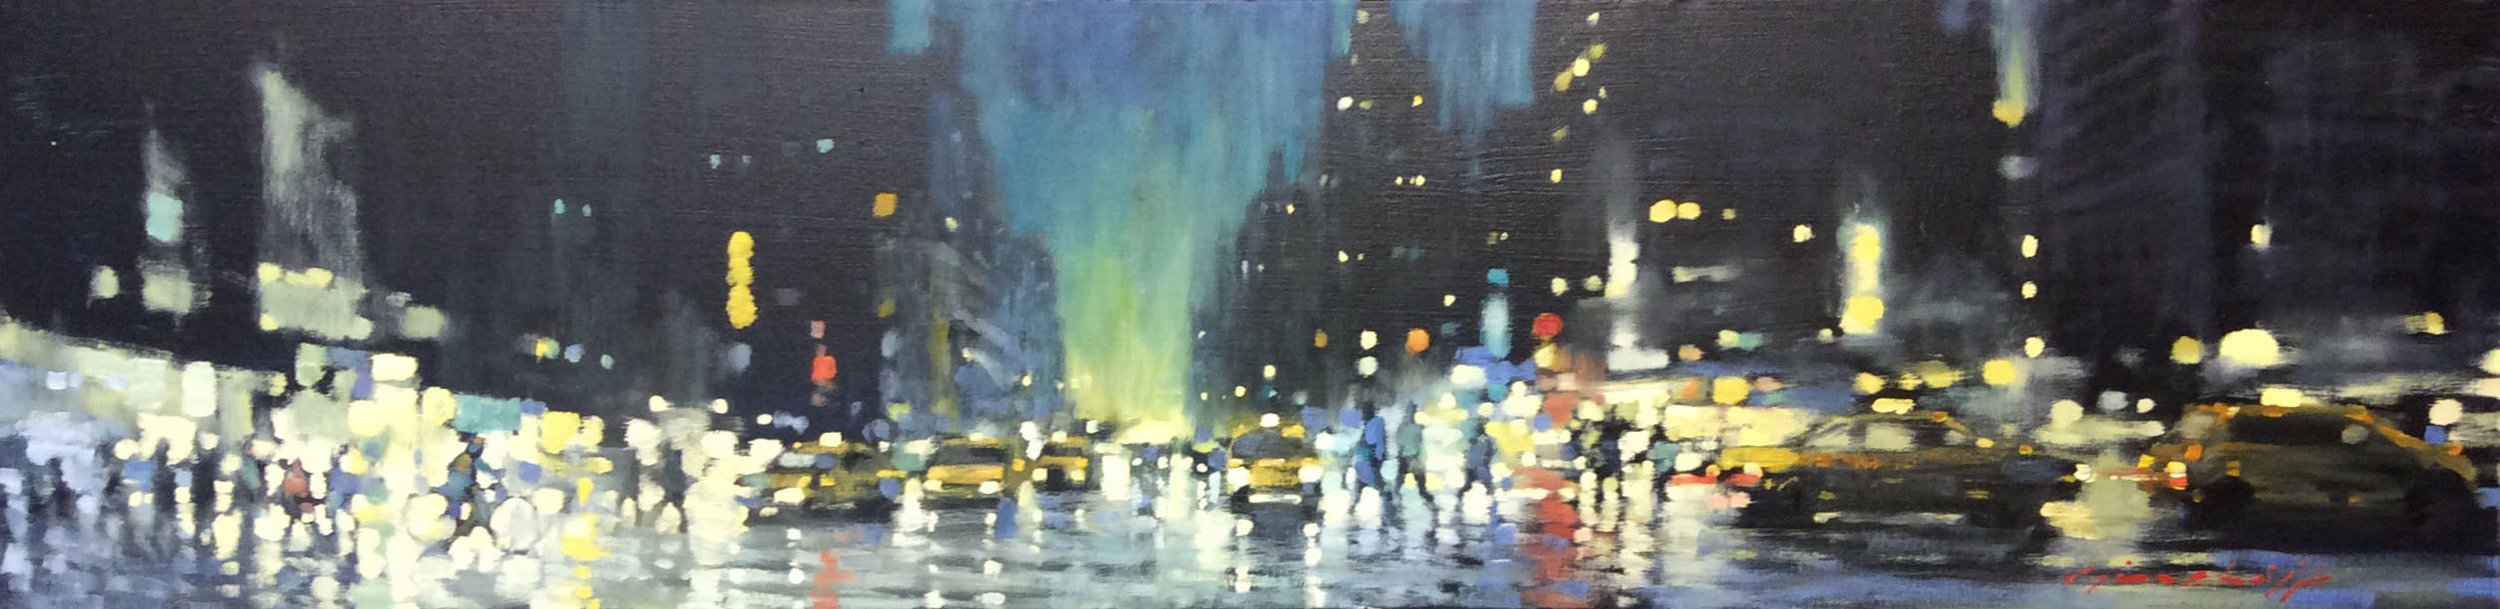 "David Hinchliffe ""Midtown Dusk"" Oil on Canvas   48"" x 12"""